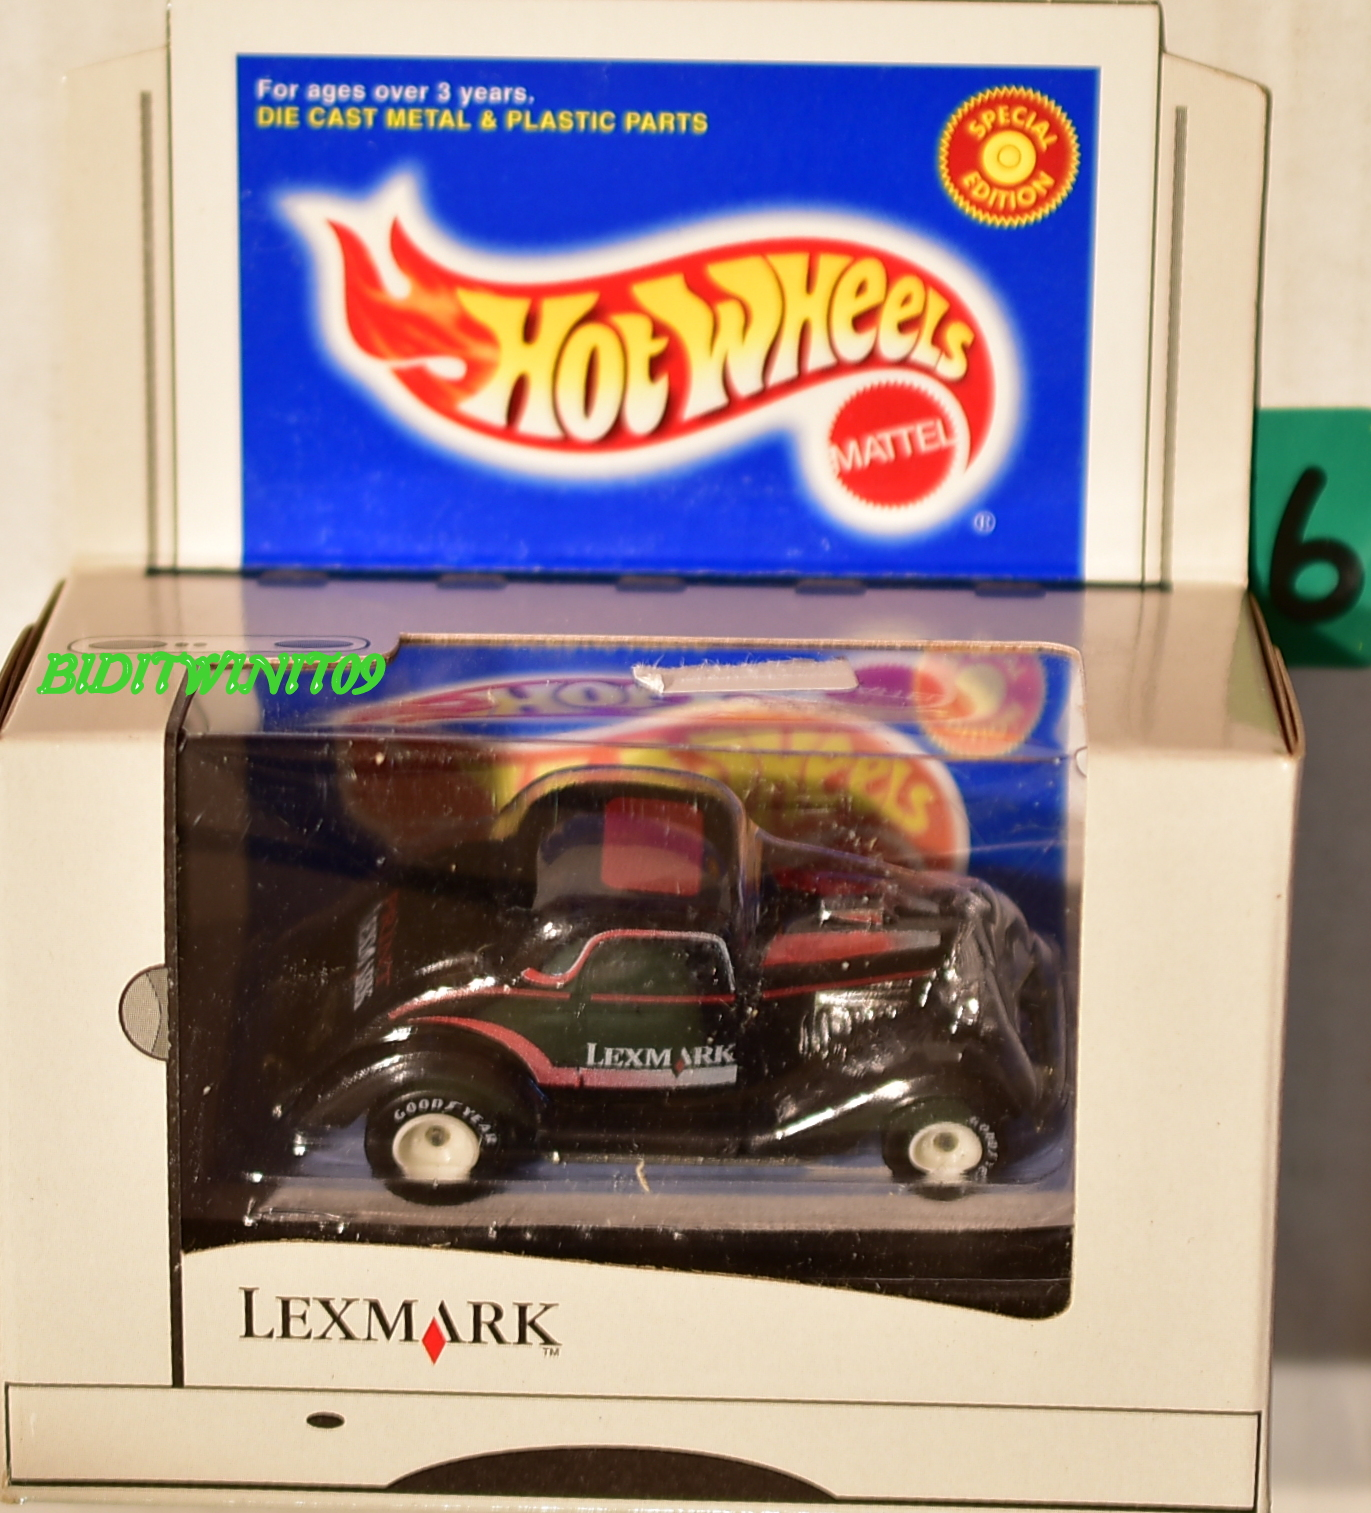 HOT WHEELS LEXMARK EXCLUSIVE 3 WINDOW 20814 LIMITED EDITION E+